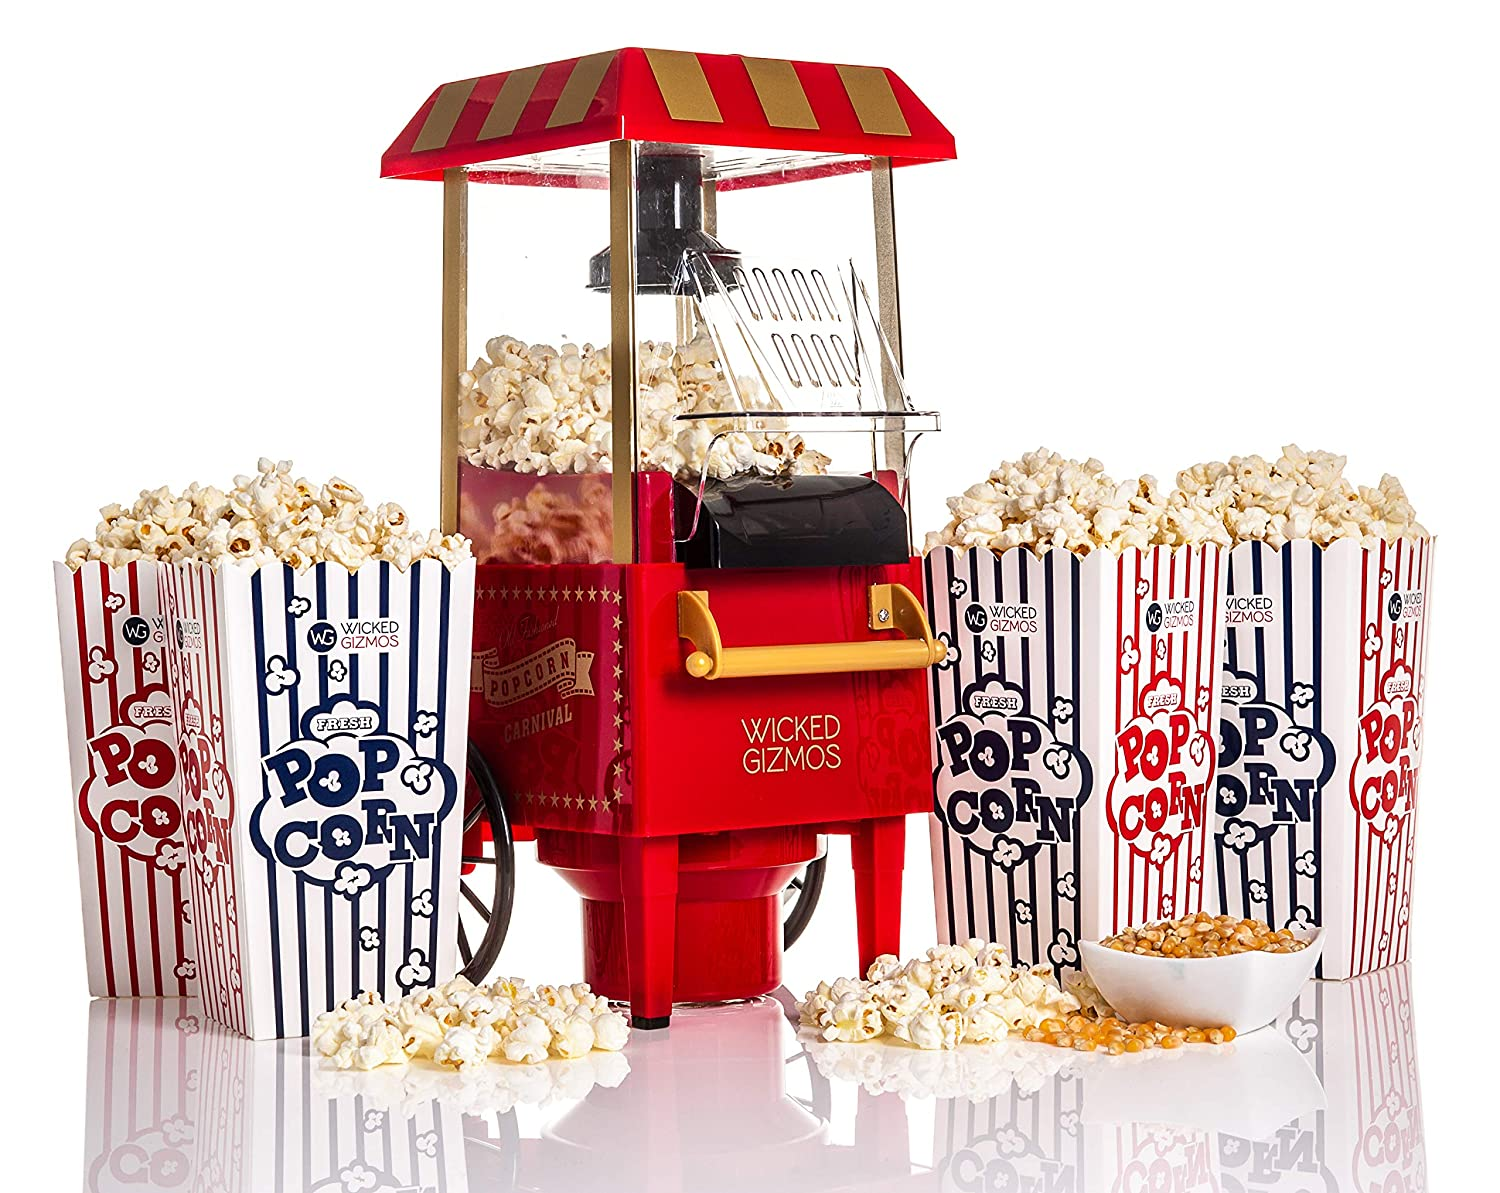 Retro Carnival Fun Fair Style Electric Hot Air Popcorn Maker Machine Popper 1930s Style by Express trading: Amazon.es